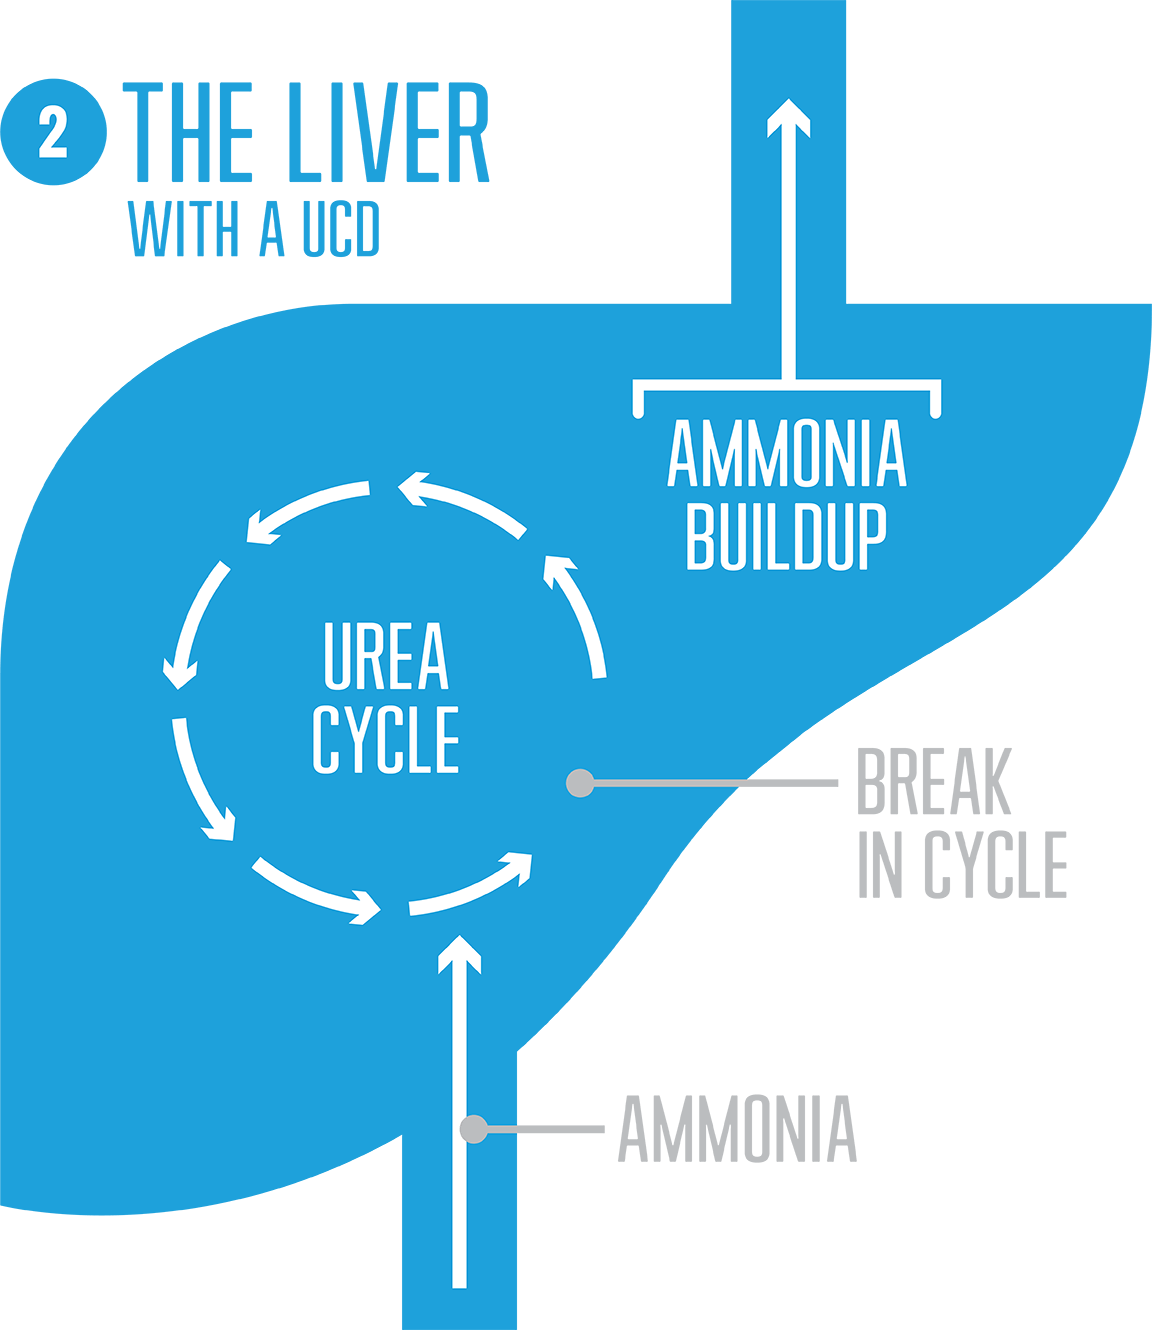 Urea Cycle Disorder diagram showing how break in cycle causes high ammonia levels